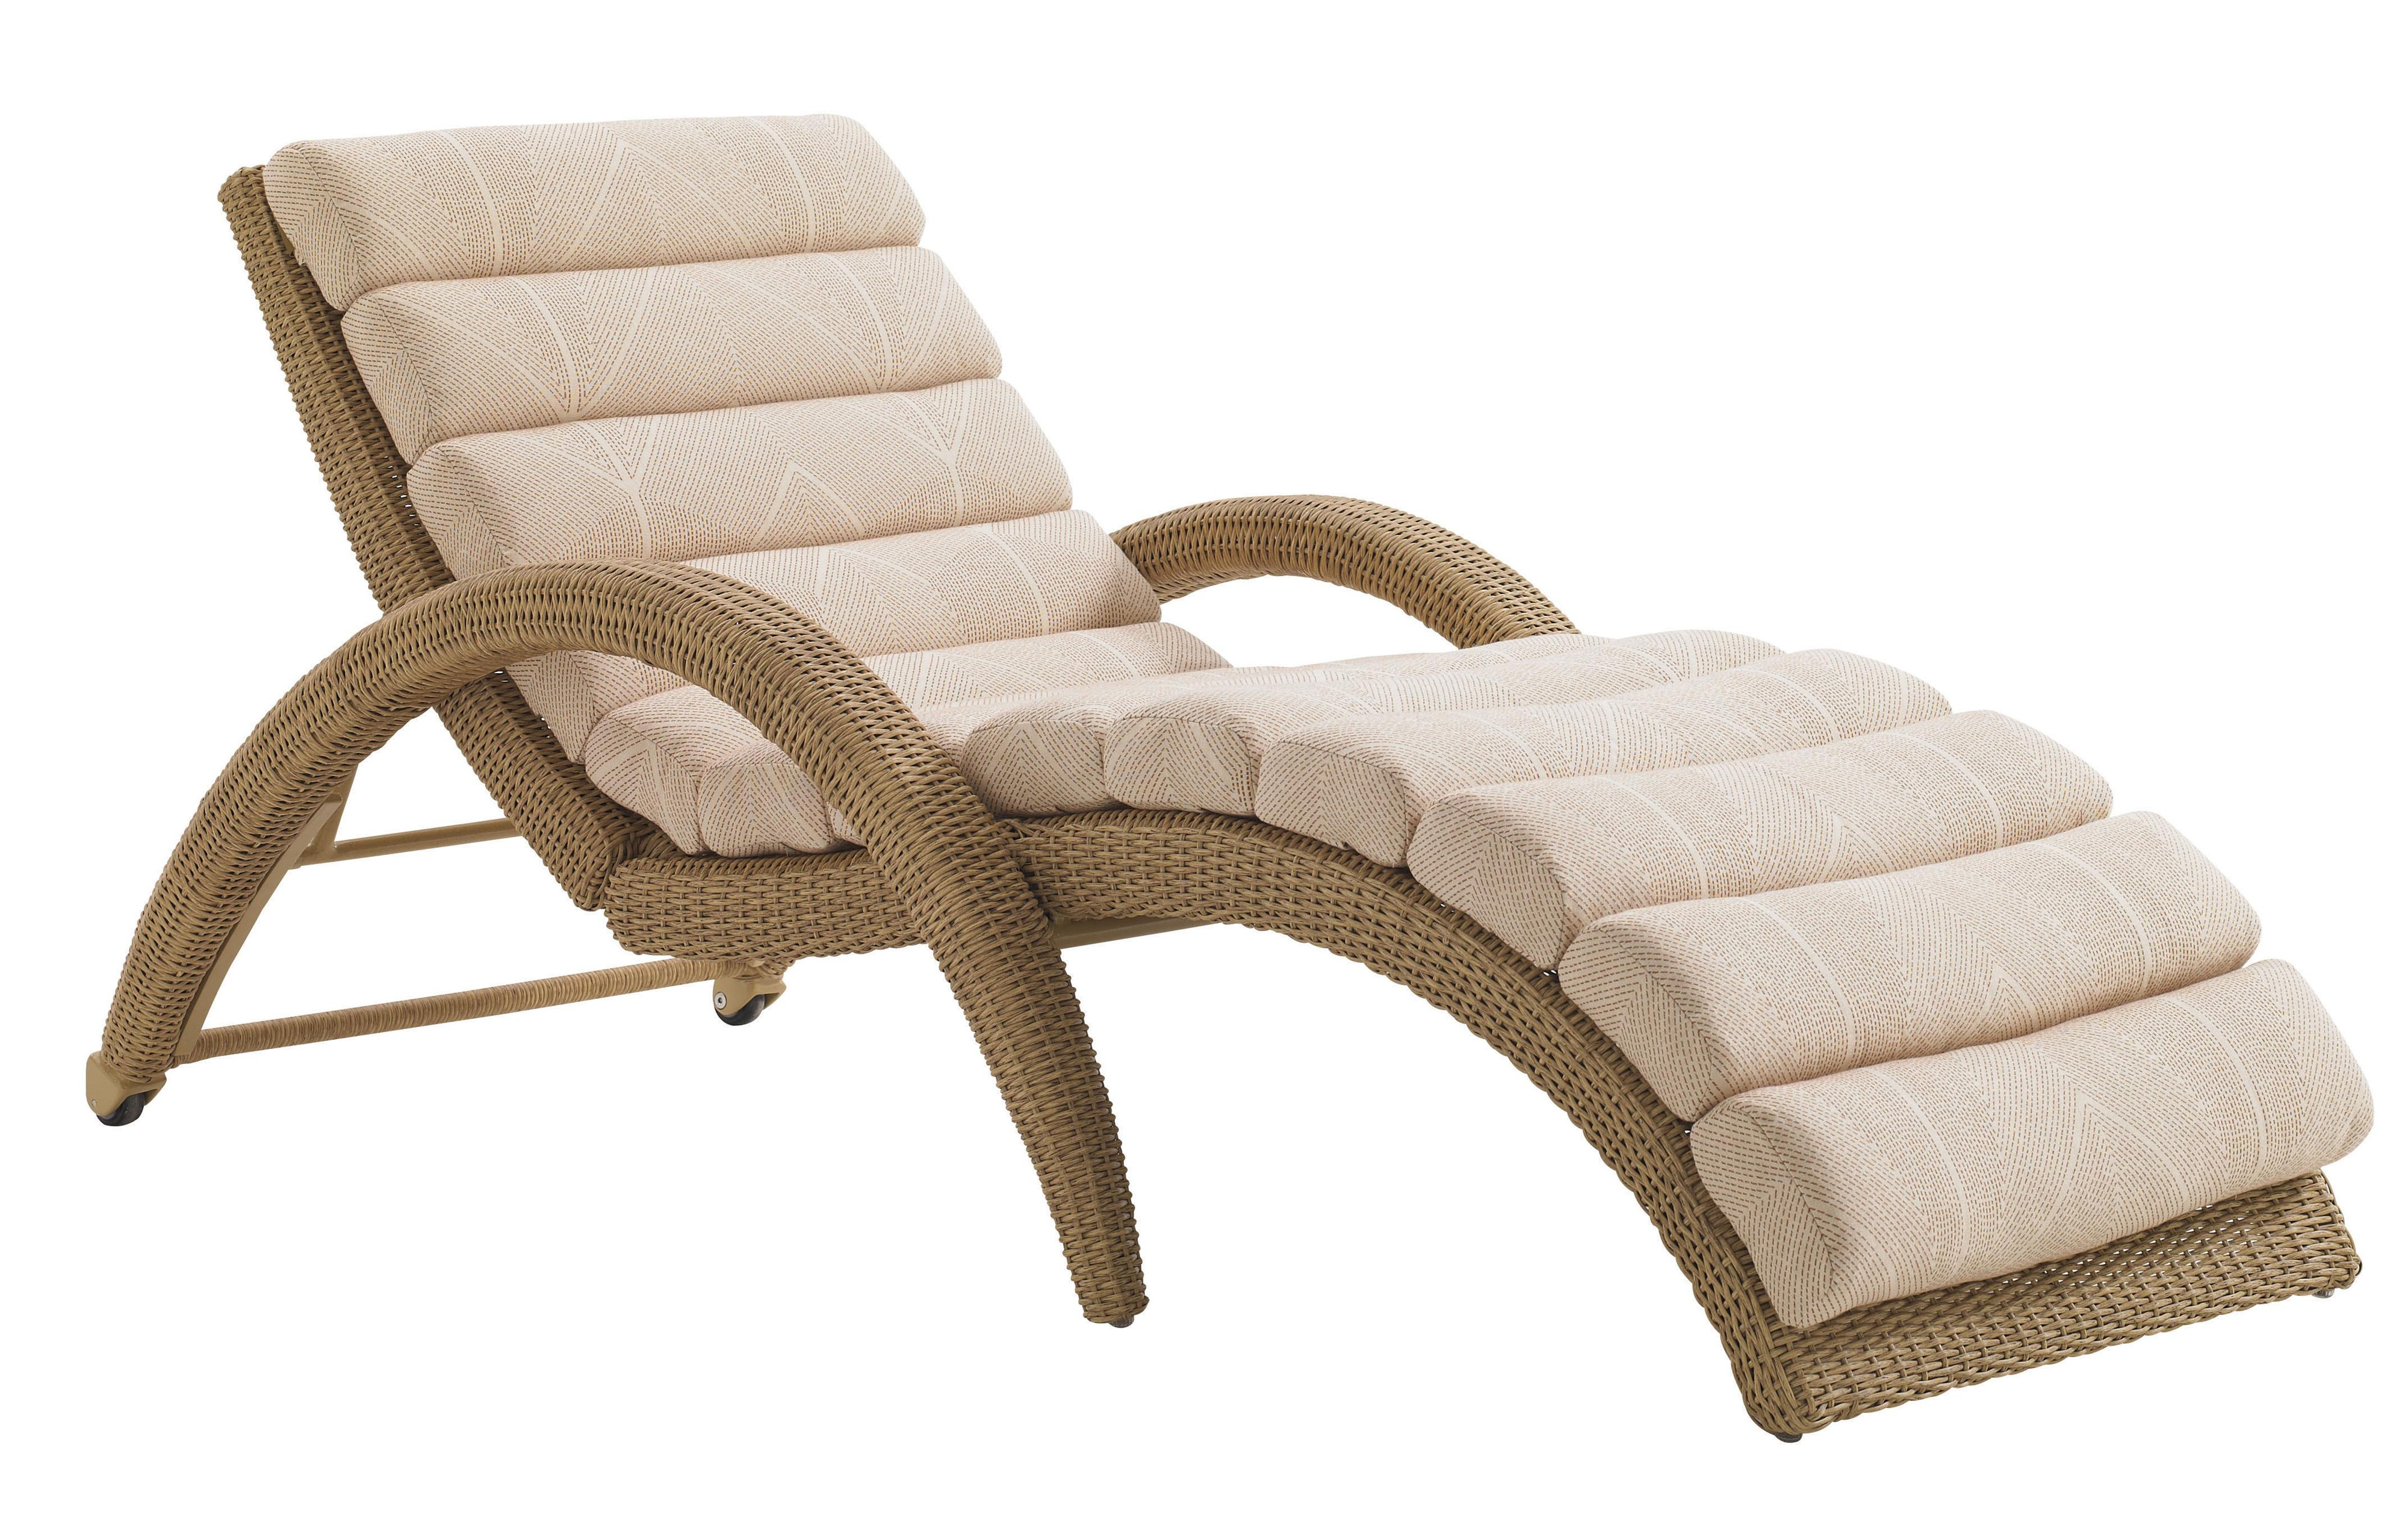 Aviano Outdoor Chaise Lounge by Tommy Bahama Outdoor Living at Baer's Furniture